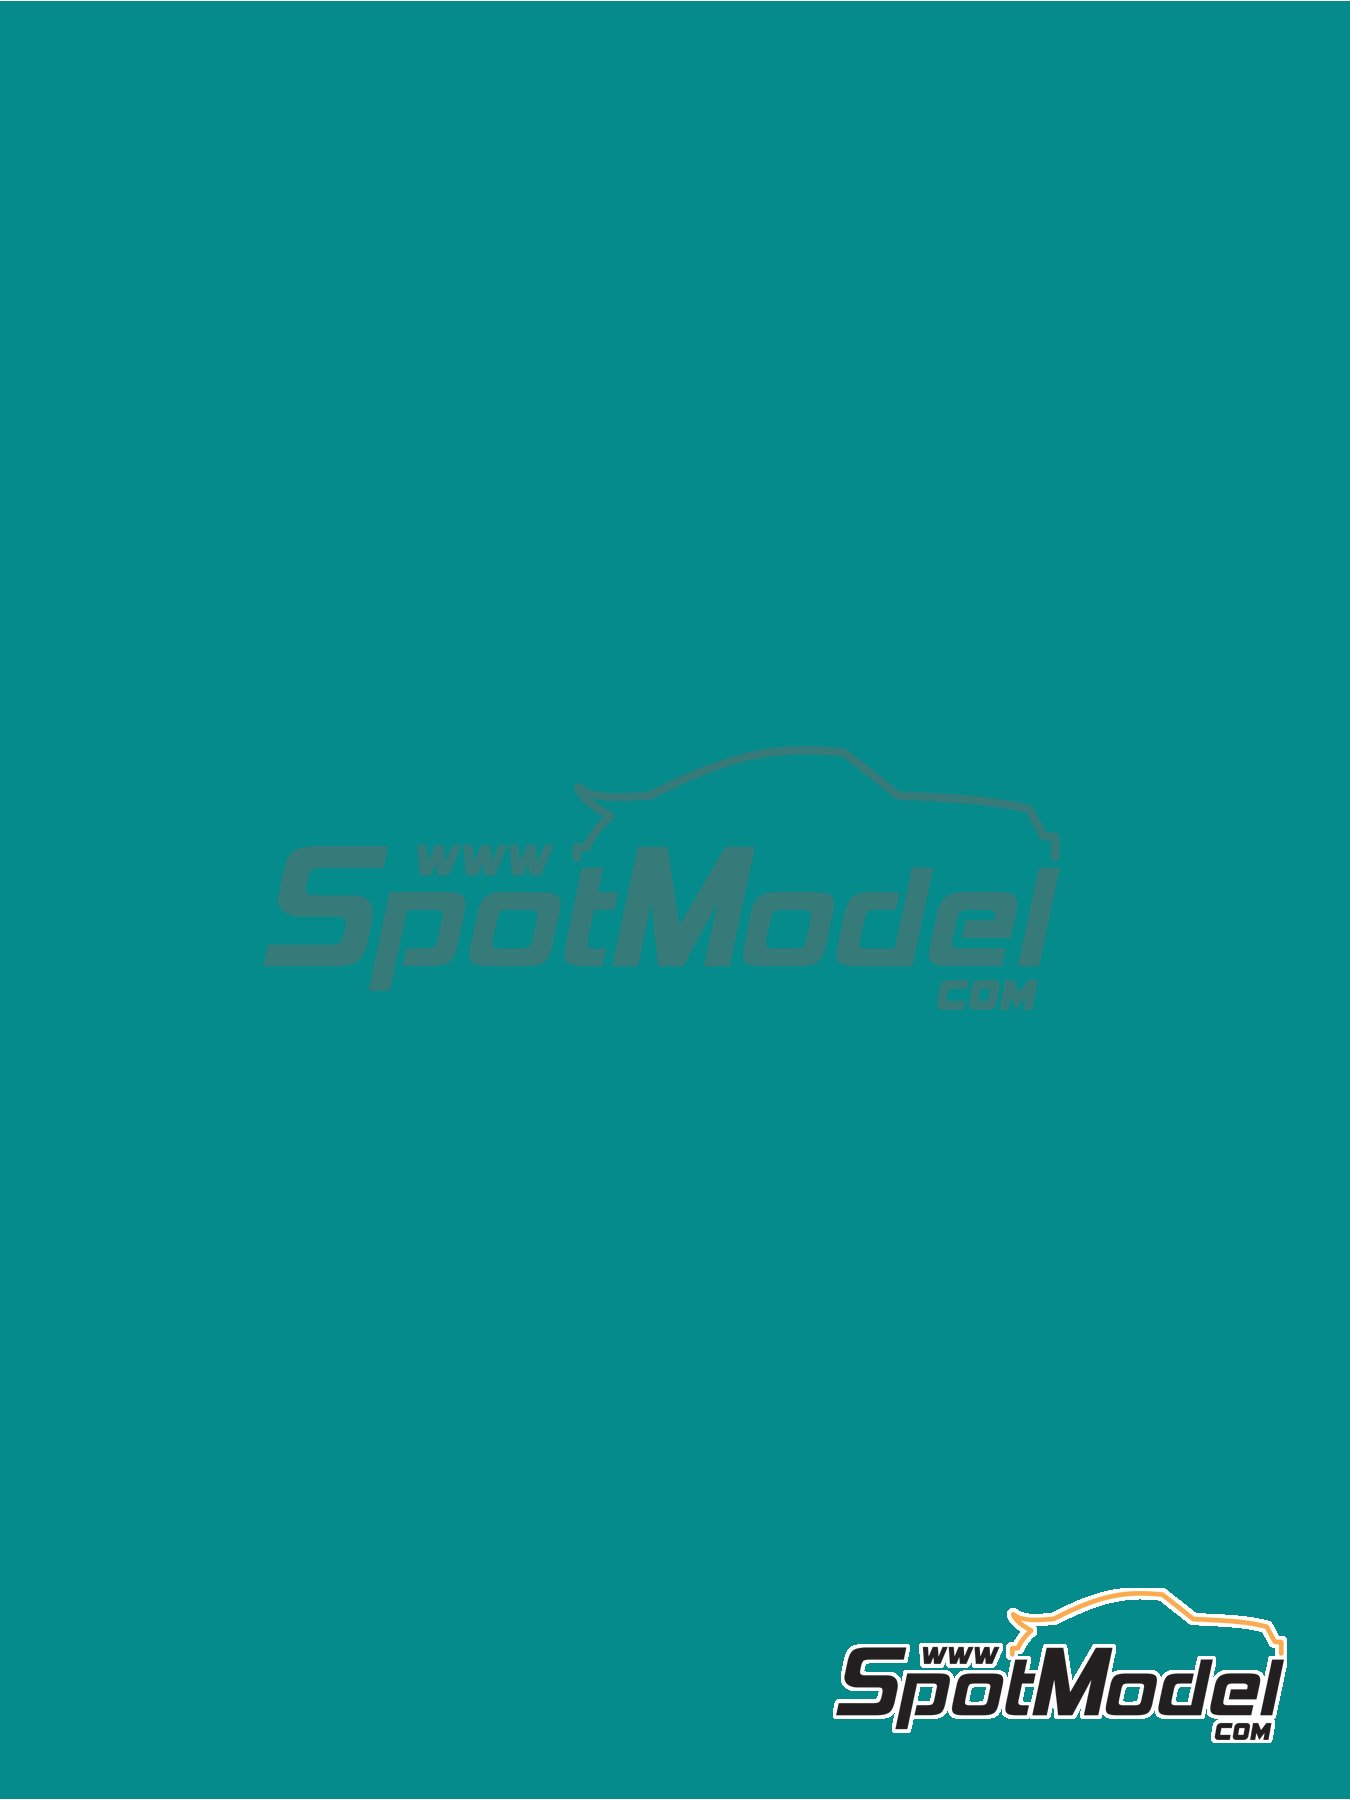 RAL5018 - Turquoise blue - 1 x 60ml | Paint manufactured by Zero Paints (ref.ZP-1033-RAL5018) image